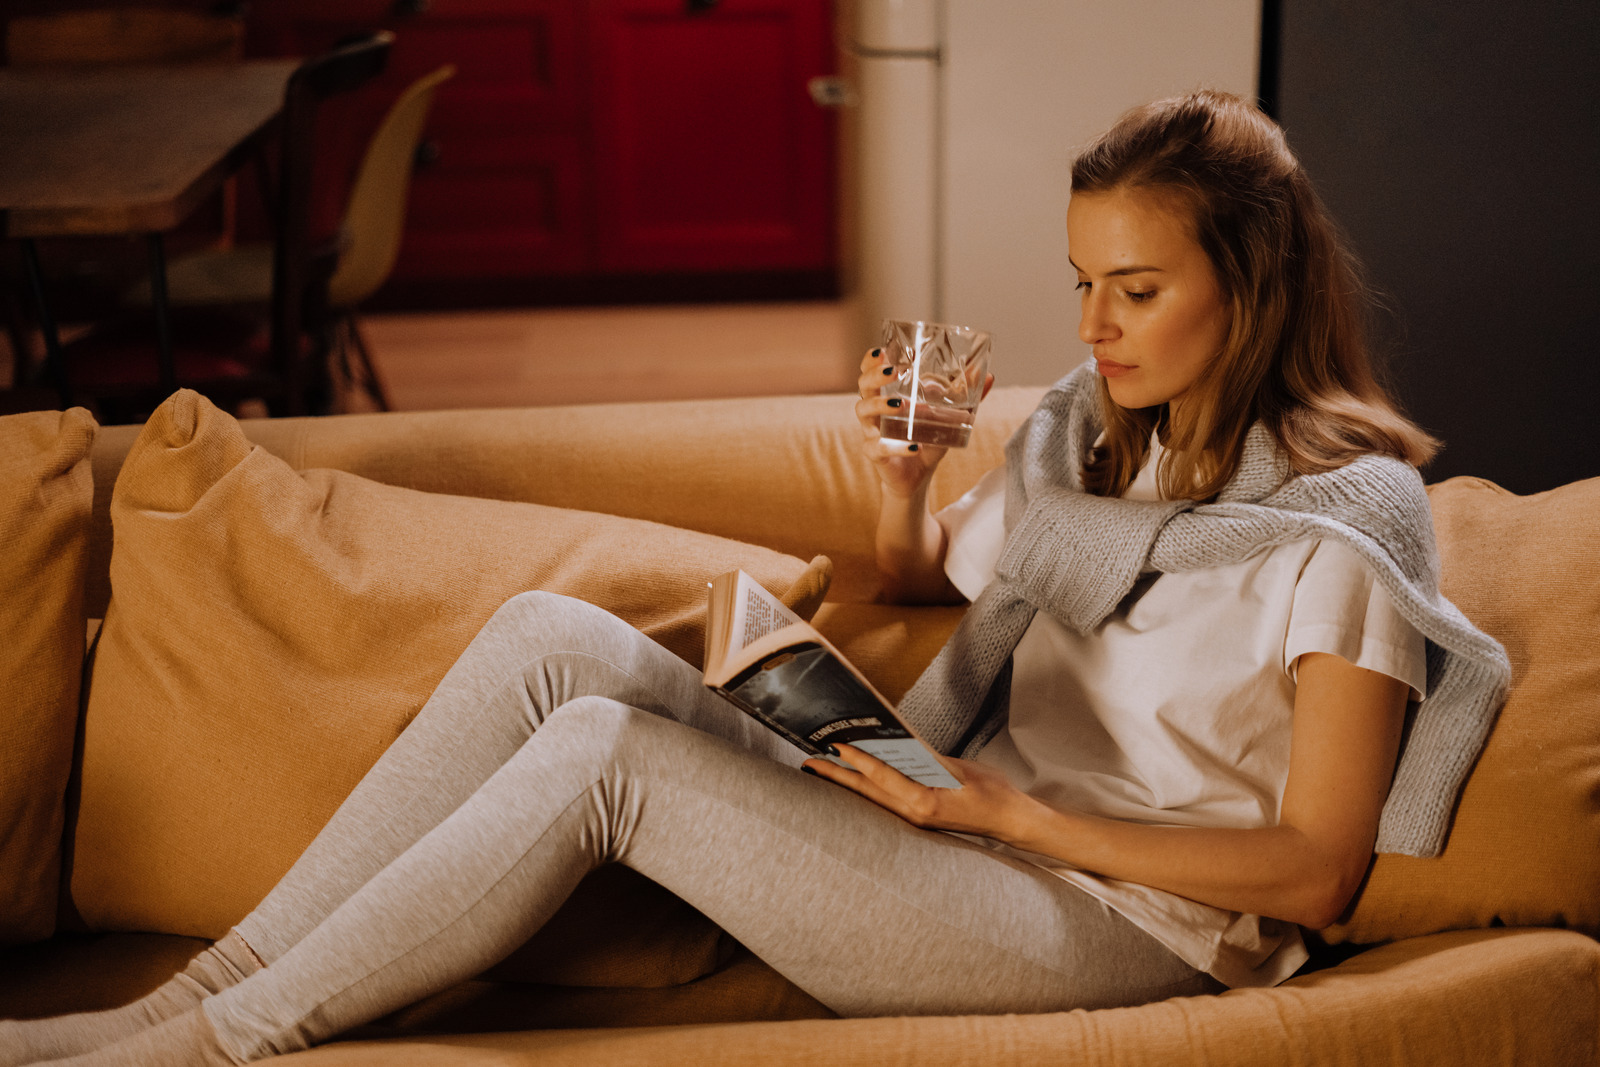 young lady sits comfortably on the couch, reads a book and drinks wine from a wine glass